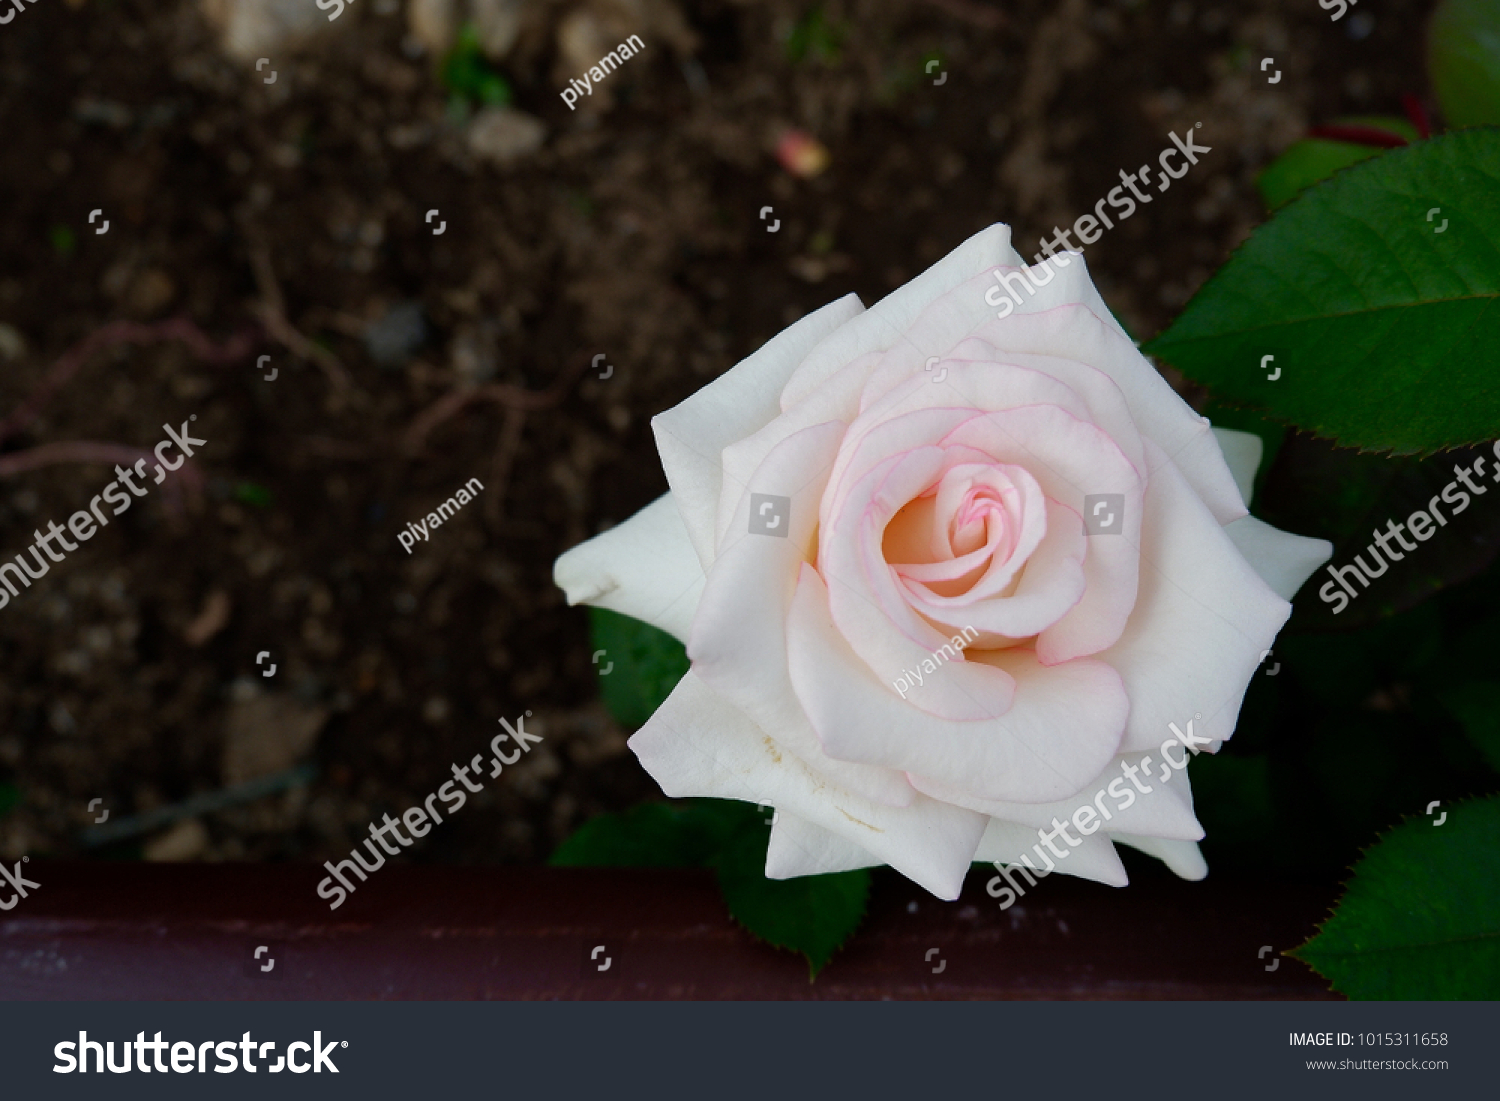 White pink rose beautiful flower rose stock photo edit now white pink rose is the beautiful flower the rose means love or passion in izmirmasajfo